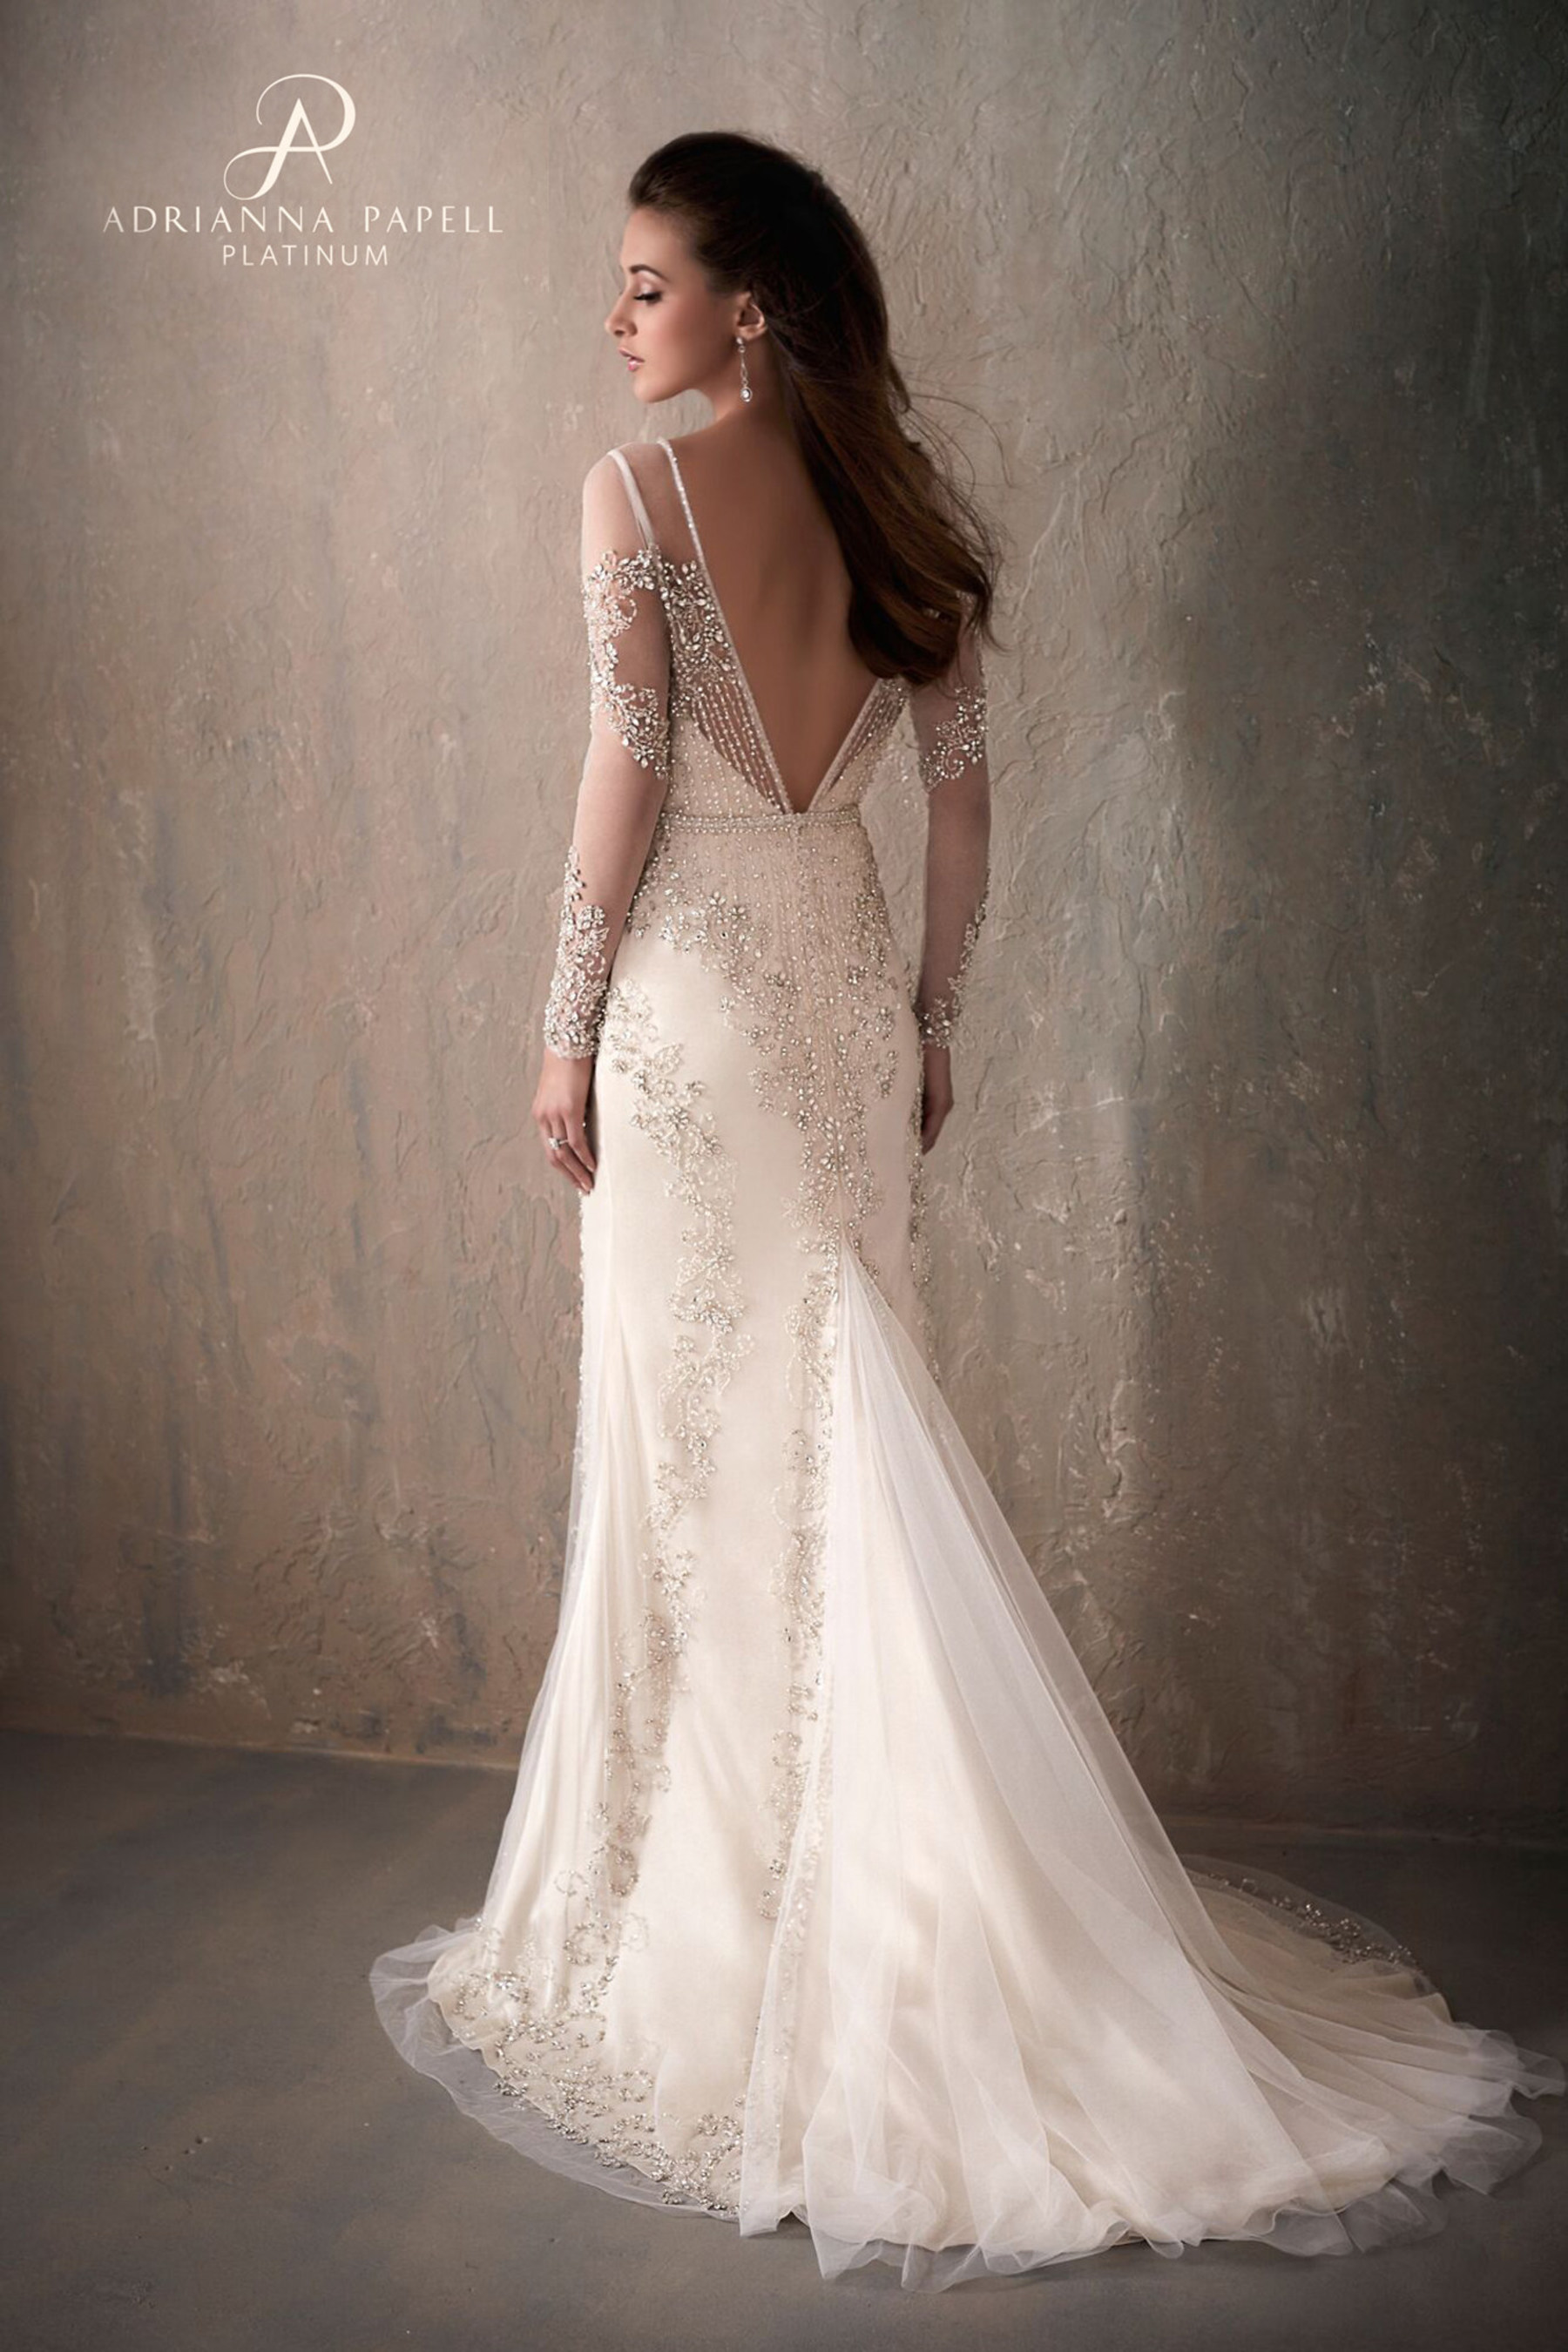 cb7b8ecfc8 Adrianna Papell announces new exclusive Platinum Bridal Collection